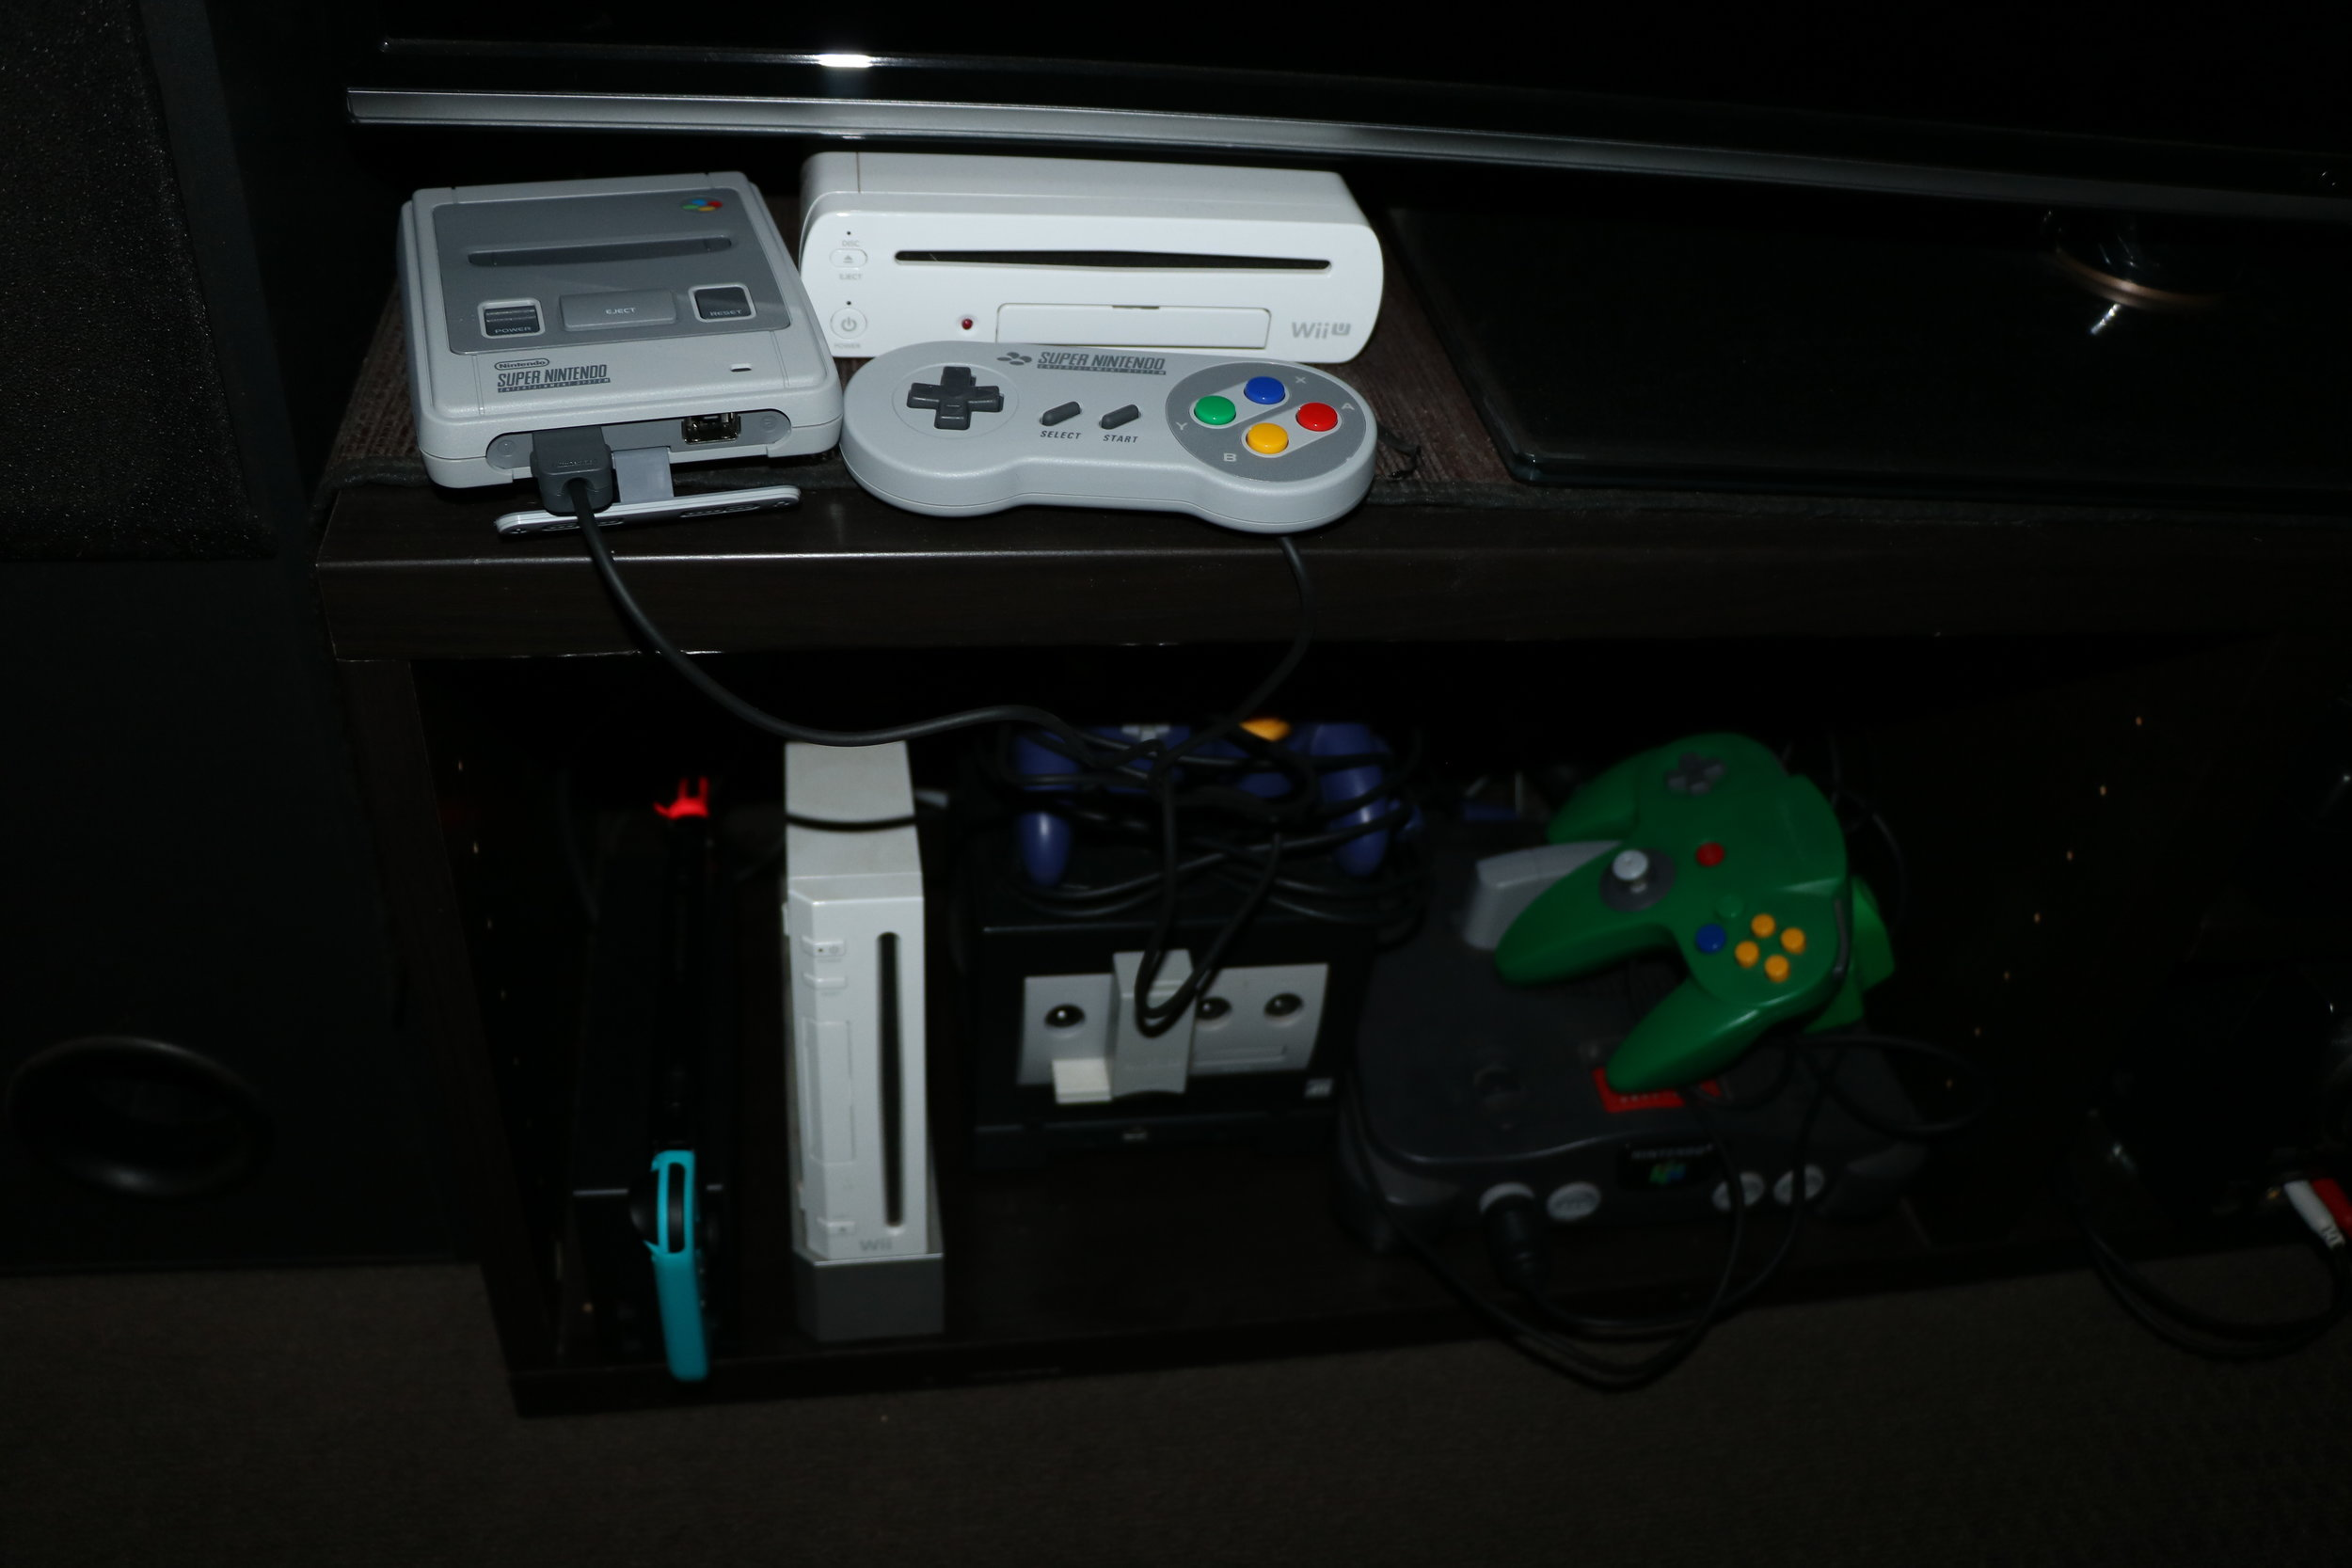 Sits nicely in the Nintendo section. (The NES and SNES have moved to the shelf now that the Retron 5 is hooked up).